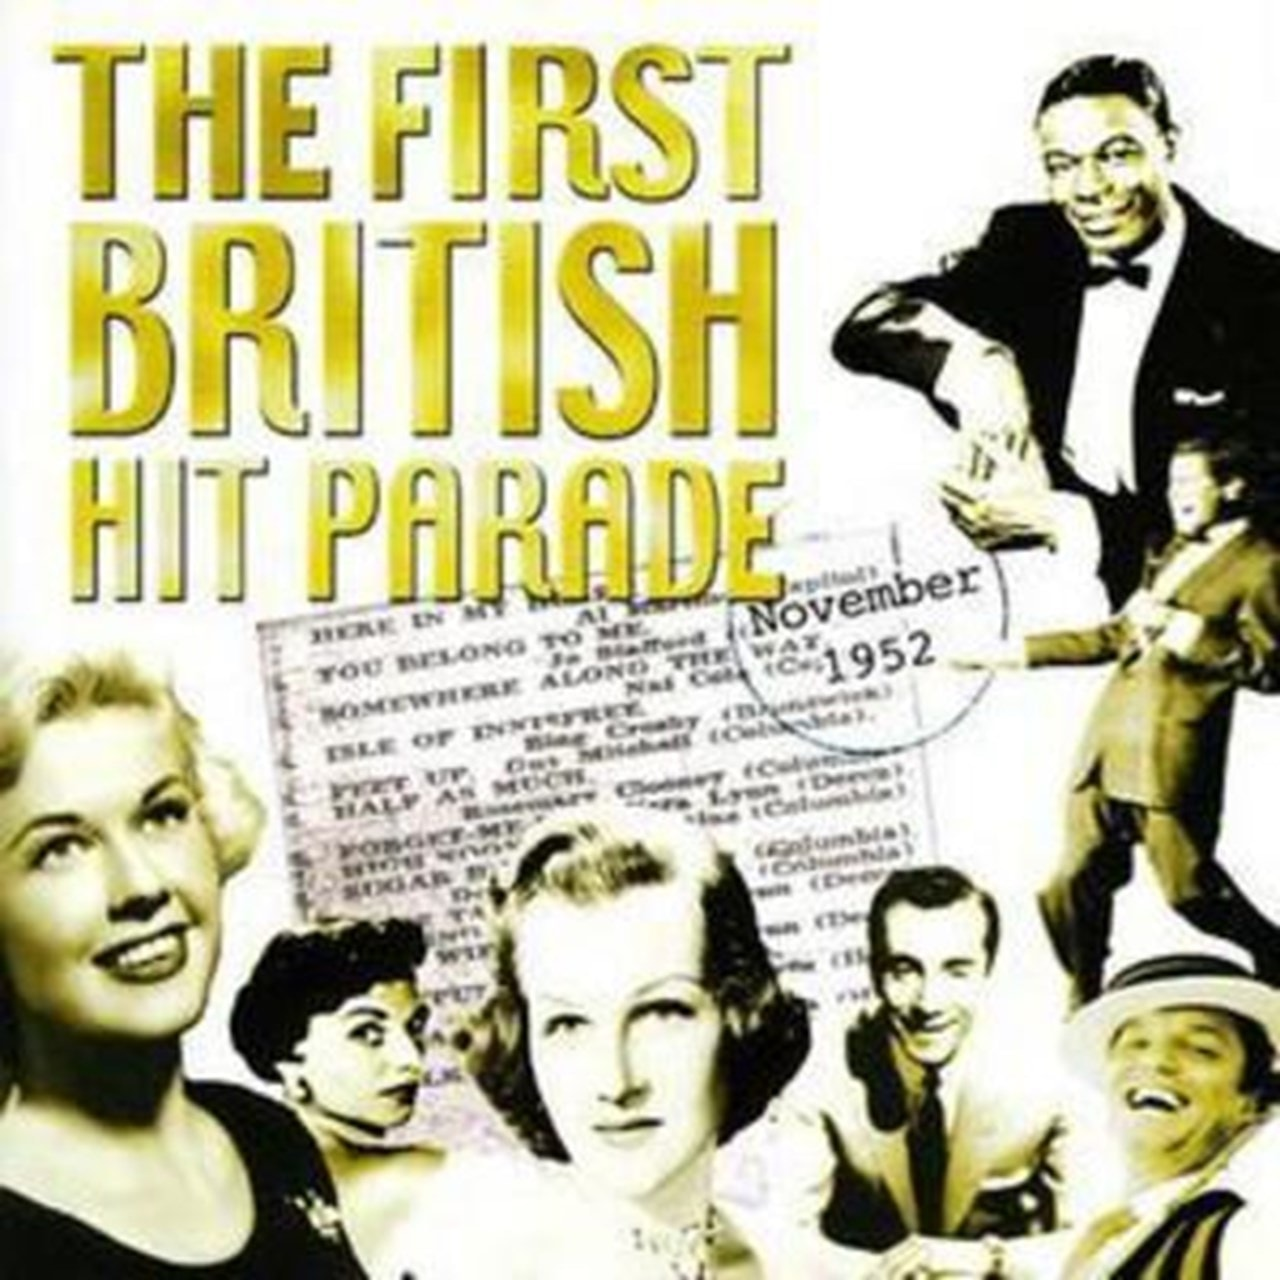 First British Hit Parade - 1